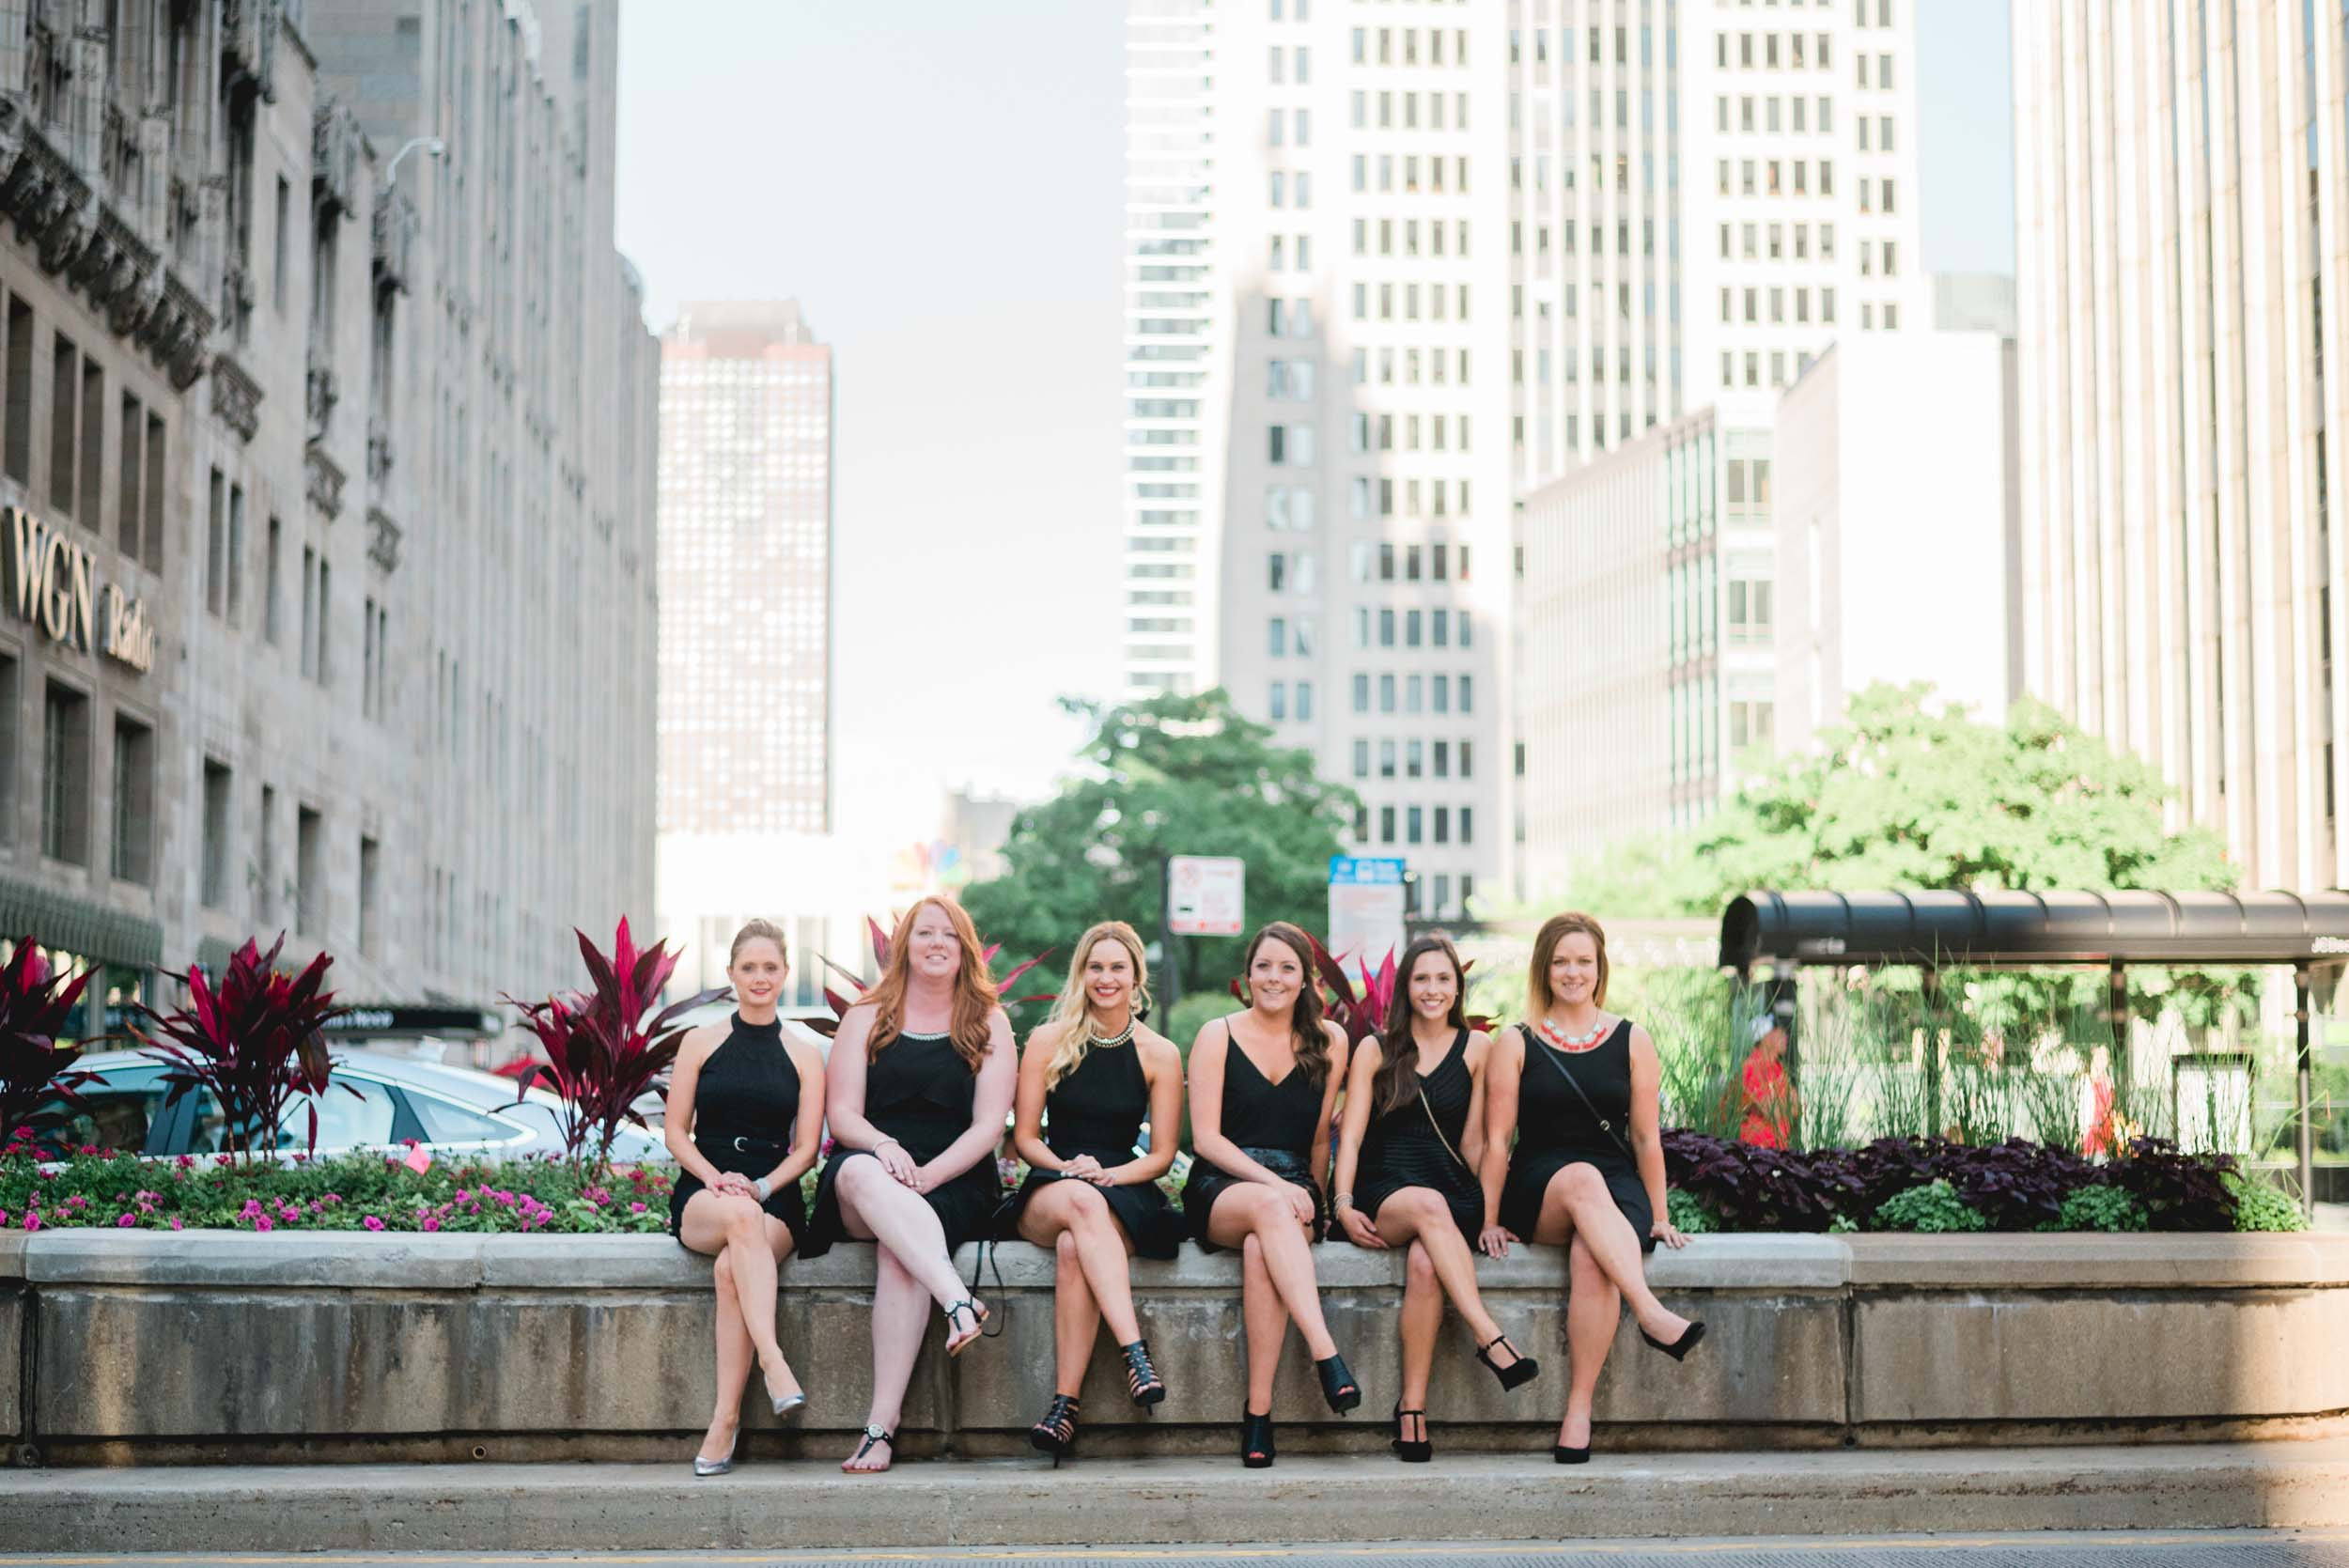 Six female friends sitting together on a stone ledge along a sidewalk on a bachelorette trip in Chicago, USA